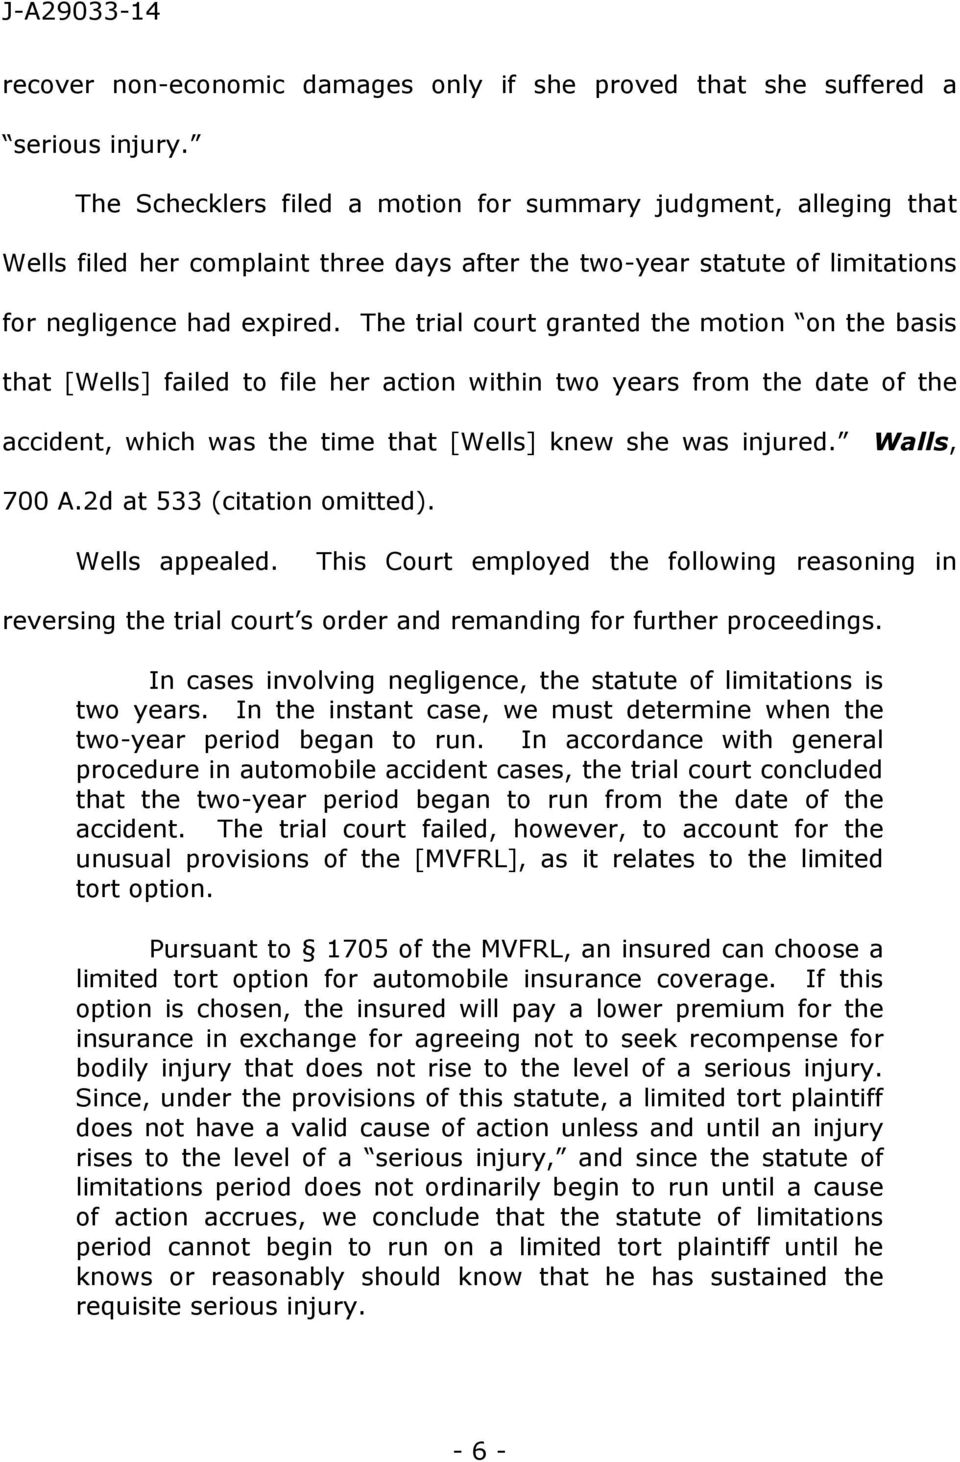 The trial court granted the motion on the basis that [Wells] failed to file her action within two years from the date of the accident, which was the time that [Wells] knew she was injured.